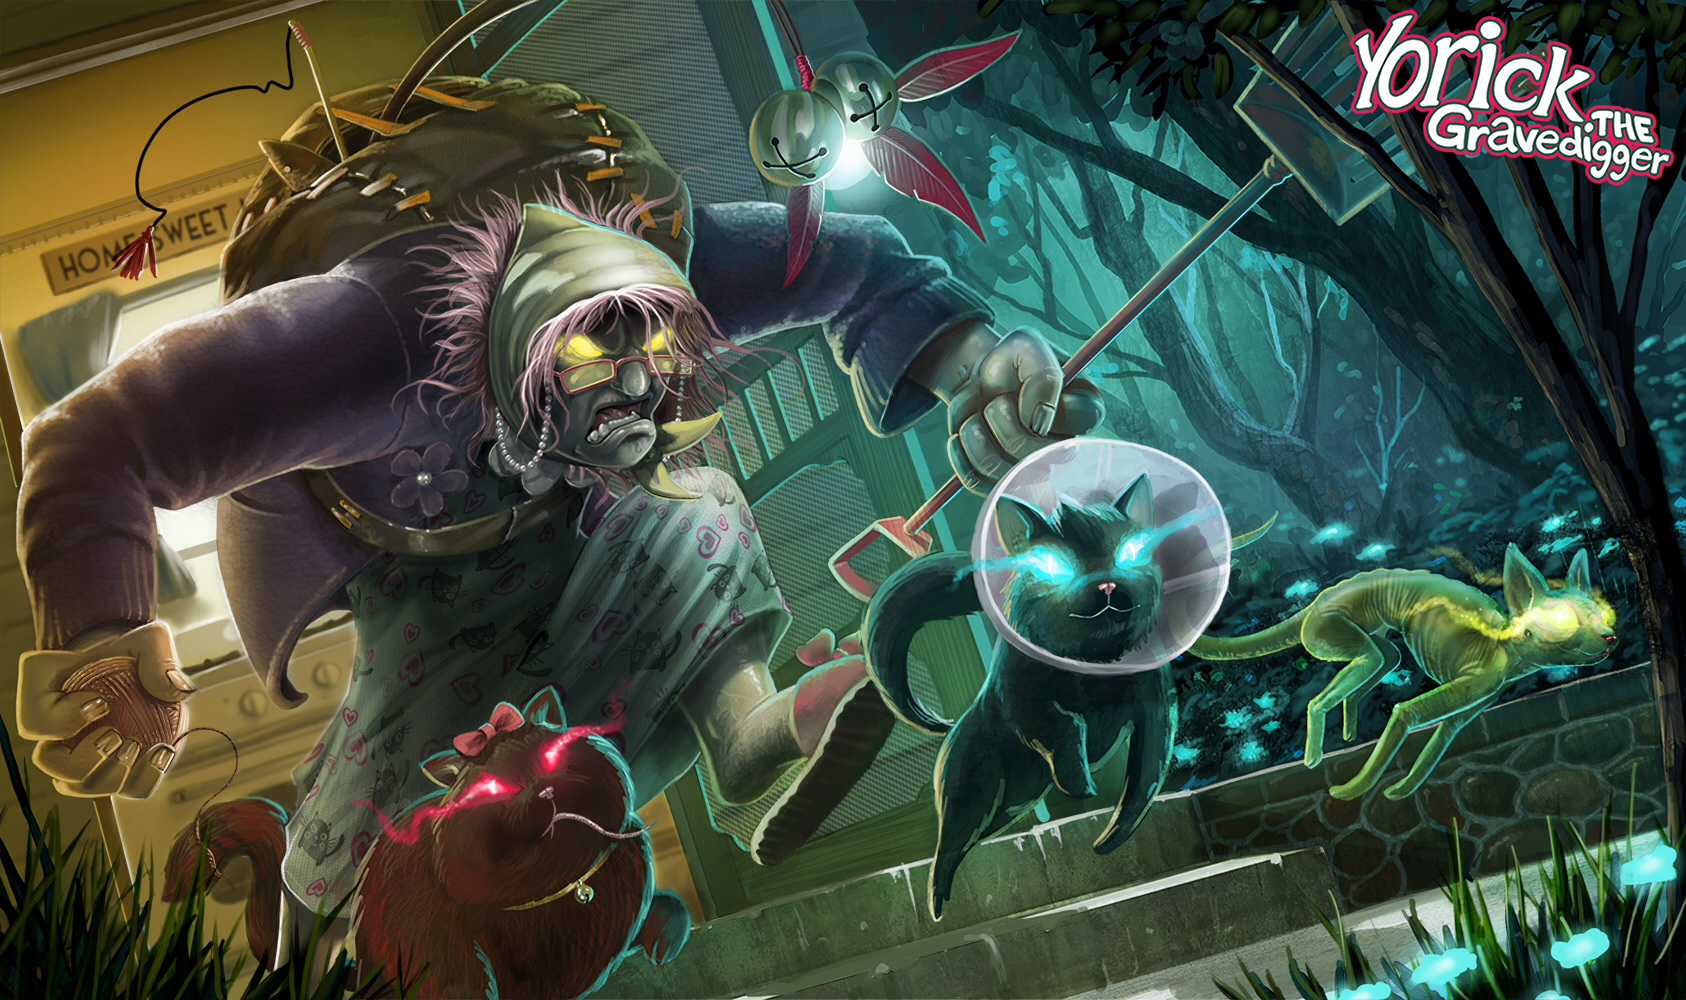 The Gravedigger Yorick wallpaper